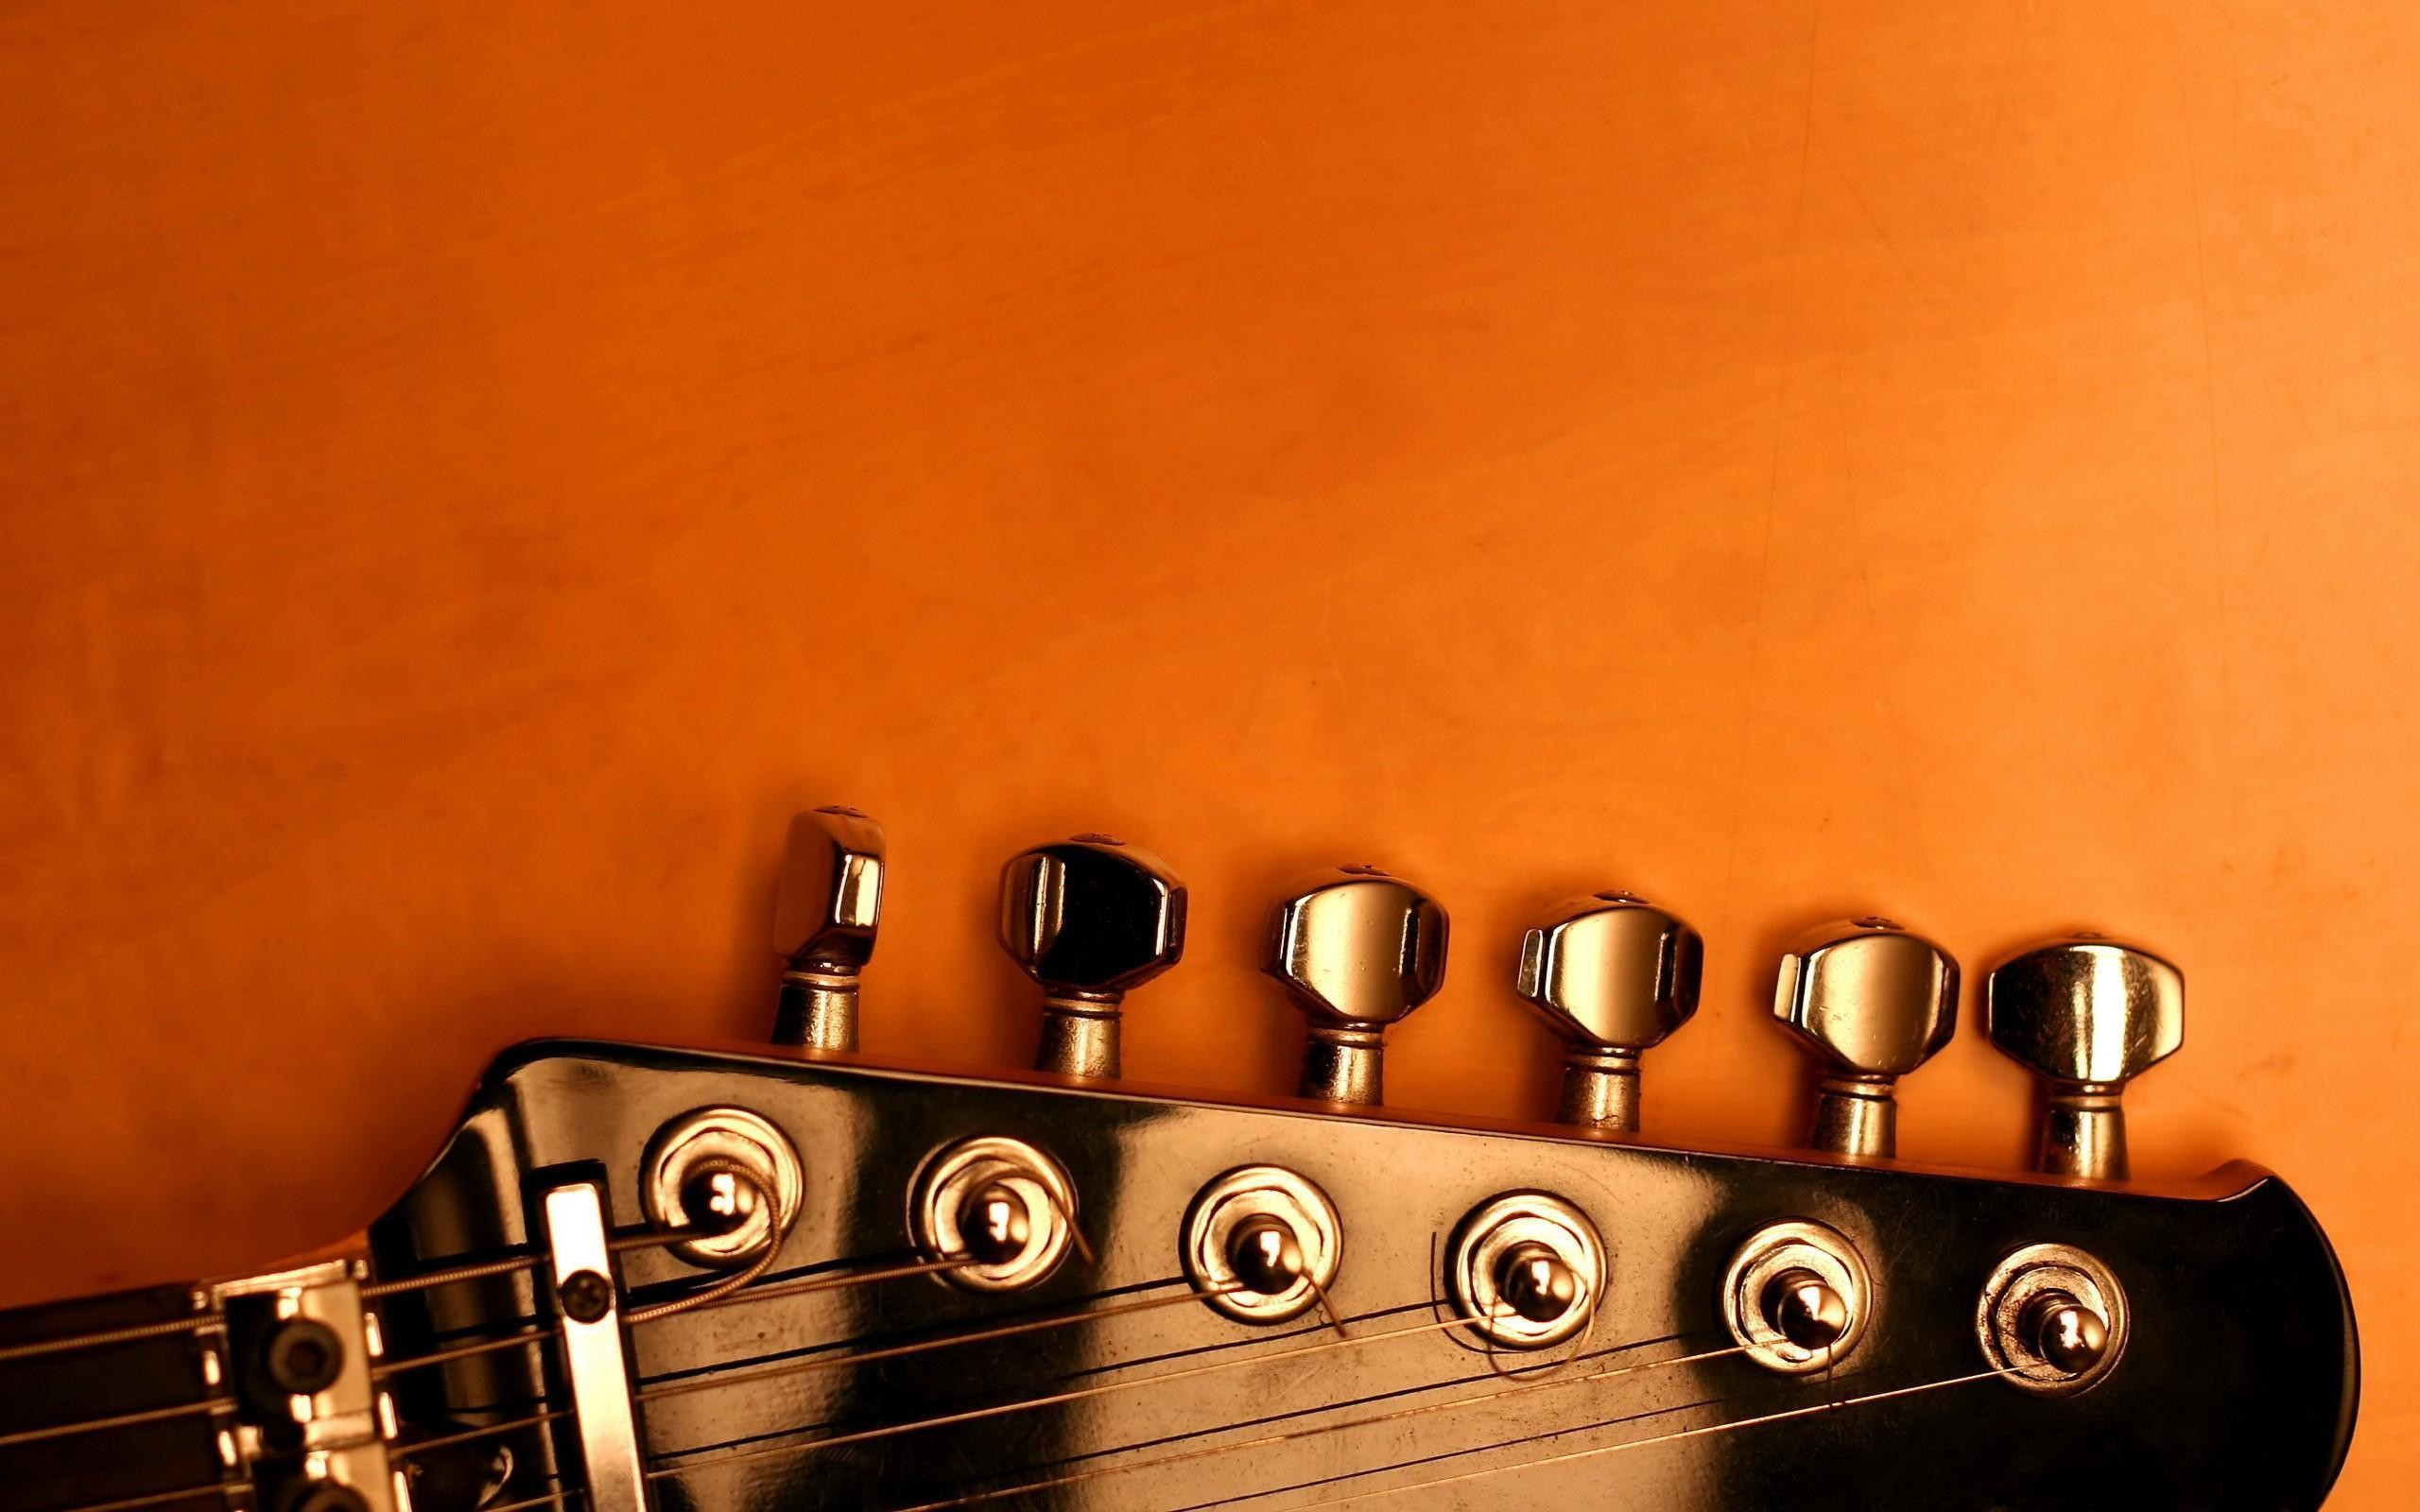 2560x1600 Wallpapers For > Guitar Wallpaper For Desktop